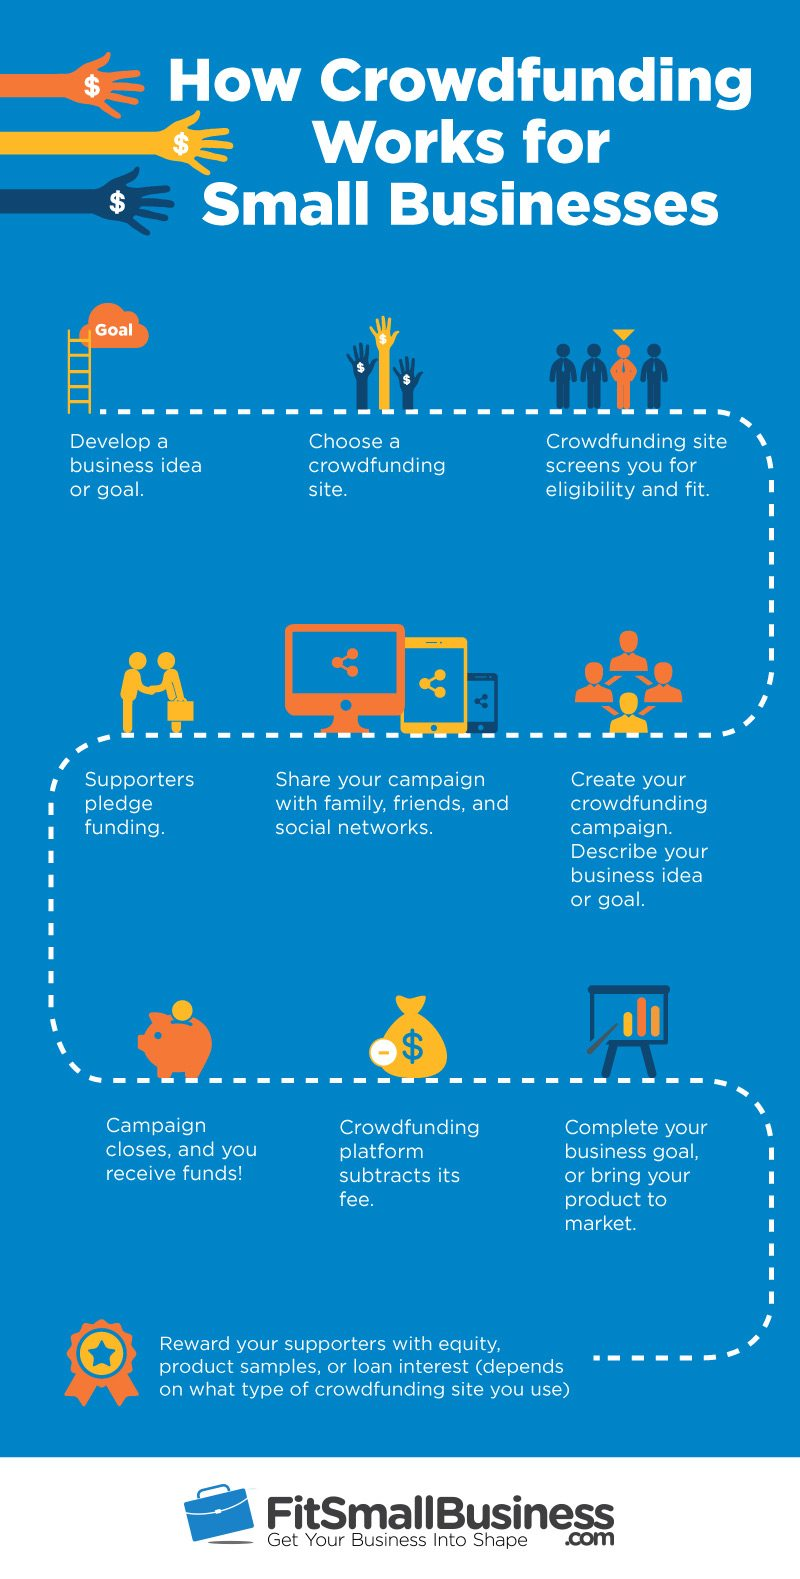 Infographic showing how crowdfunding works for small businesses